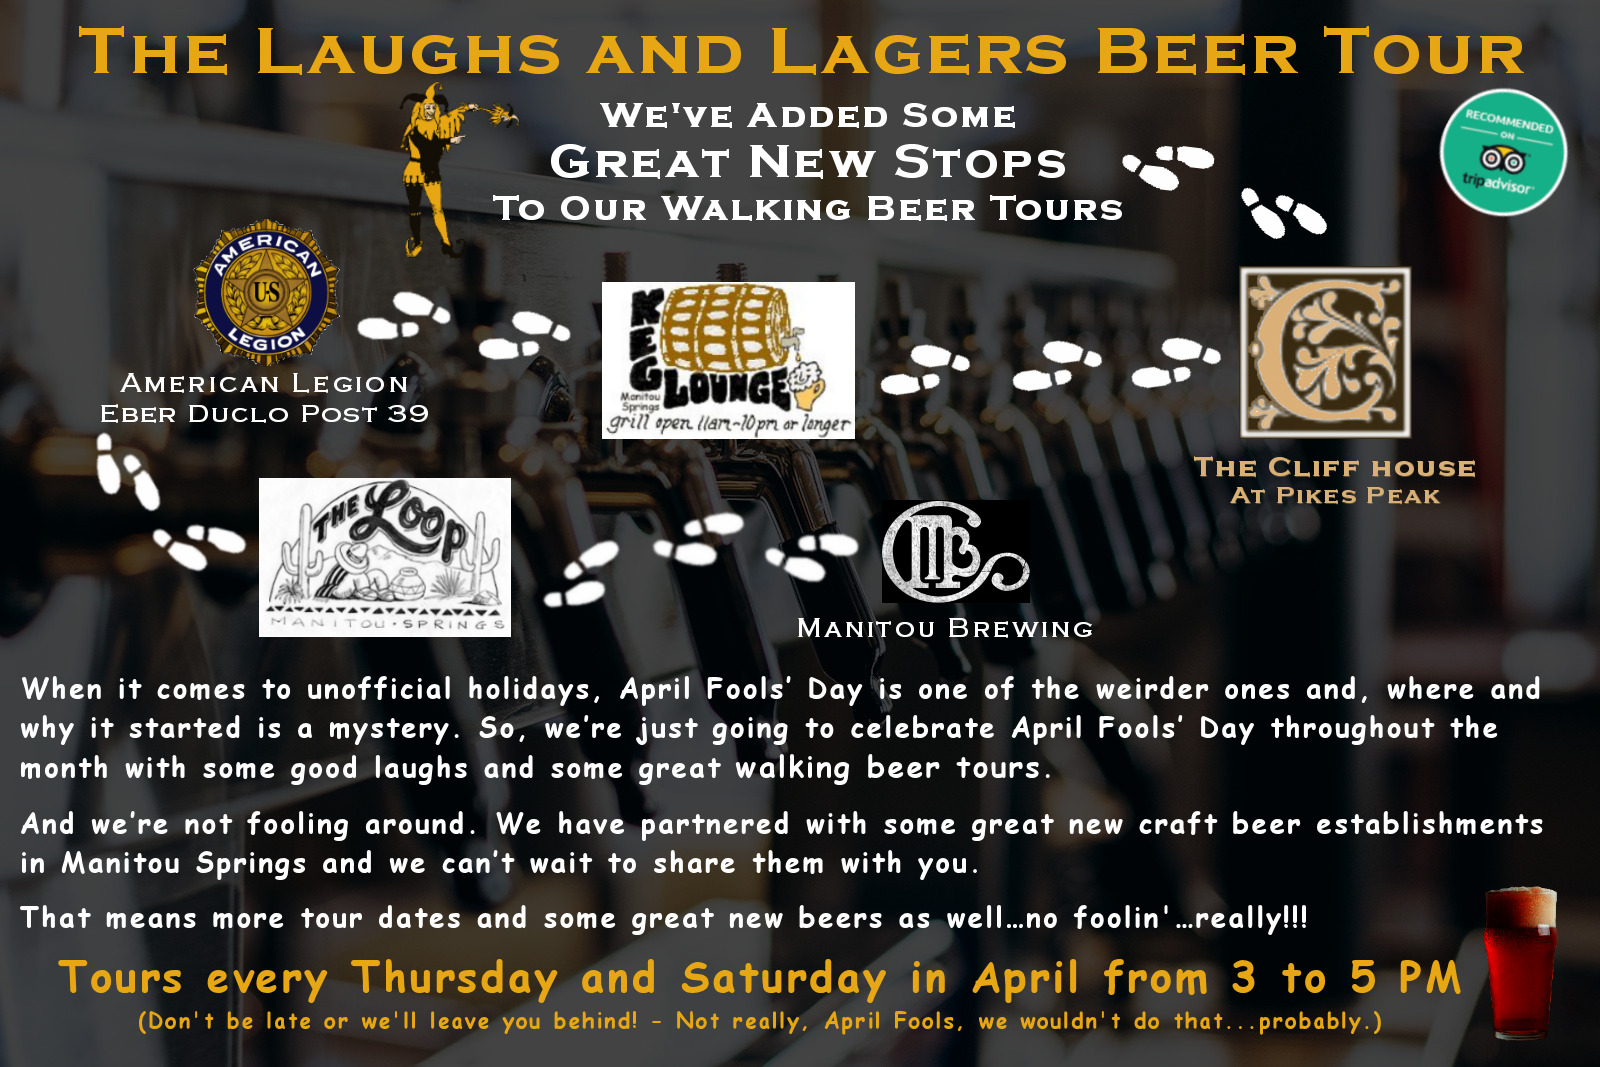 The Laughs and Lagers Beer Tour